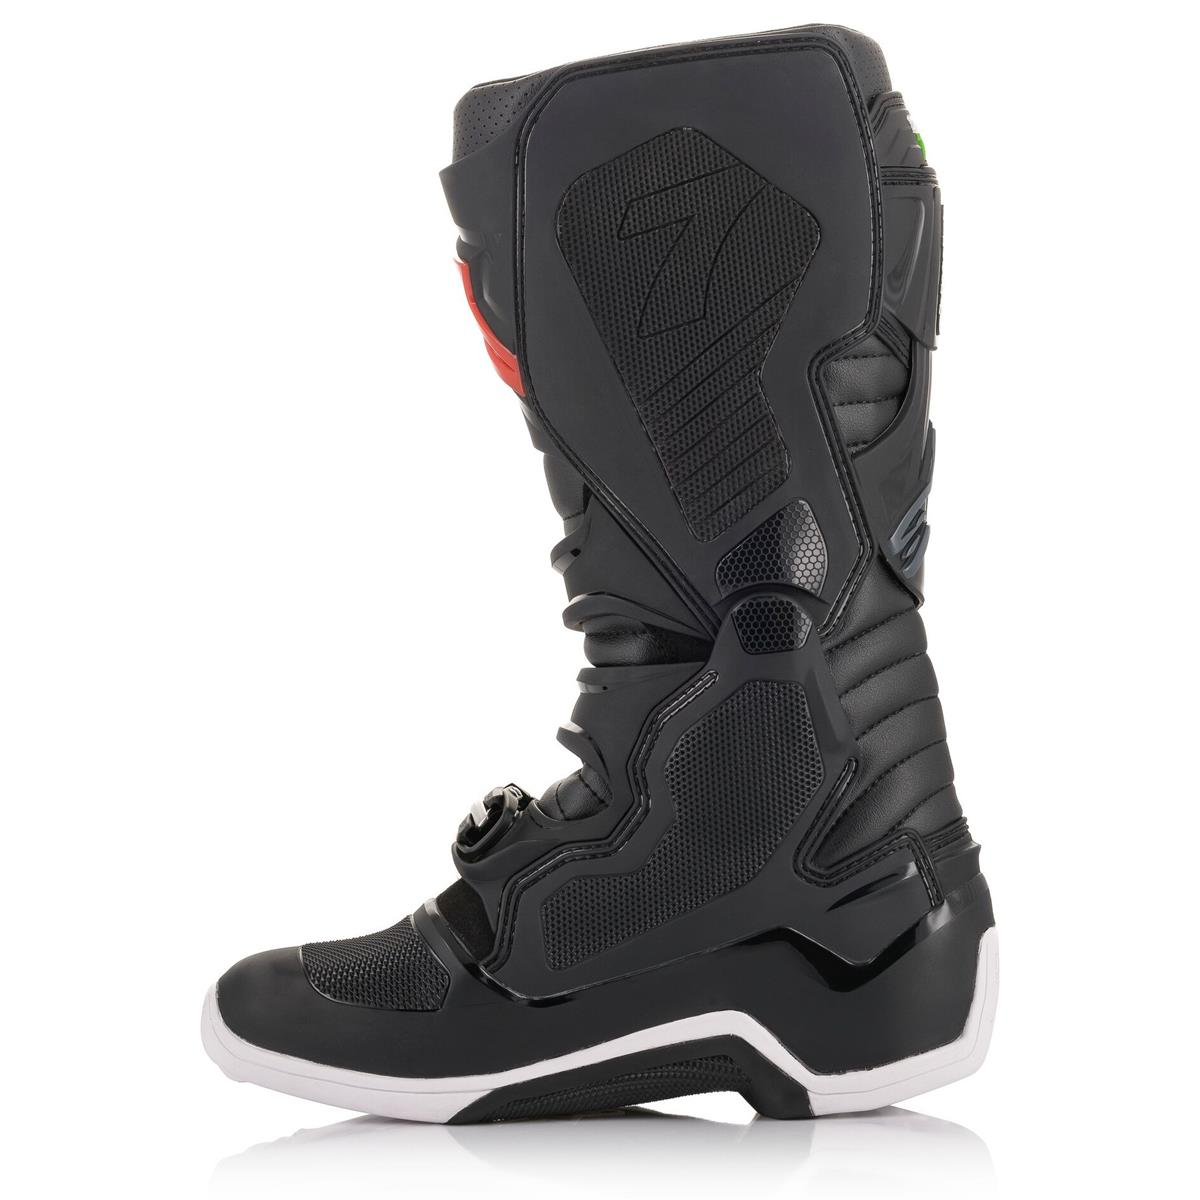 2012014 1366 2020 Alpinestars Tech 7 Boots Black Red Green Laarzen Stiefel Bottes